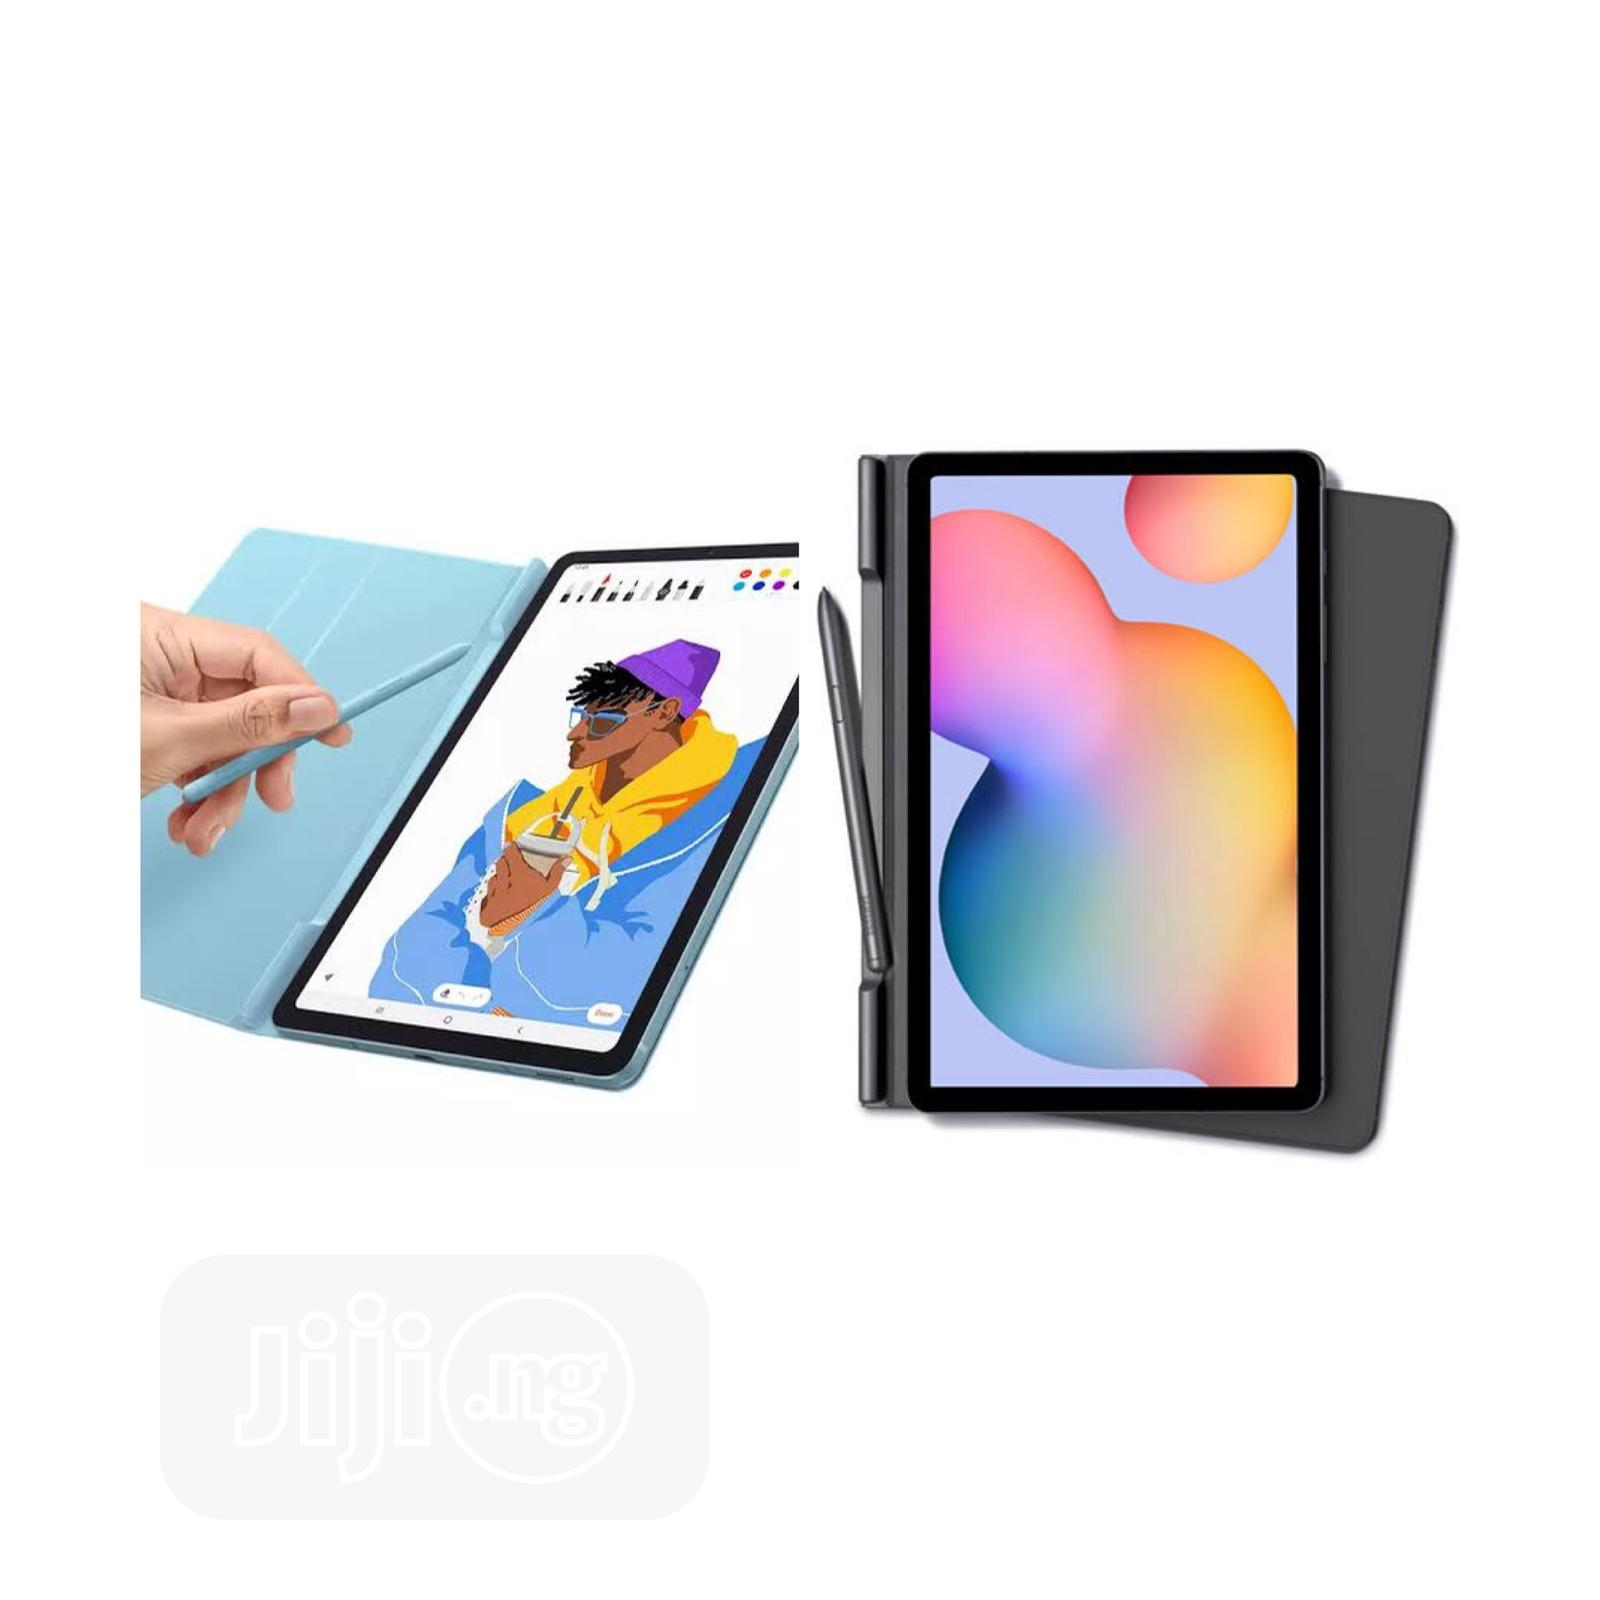 Galaxy Tab S6 Lite Official Samsung Book Cover Case | Accessories for Mobile Phones & Tablets for sale in Ikeja, Lagos State, Nigeria